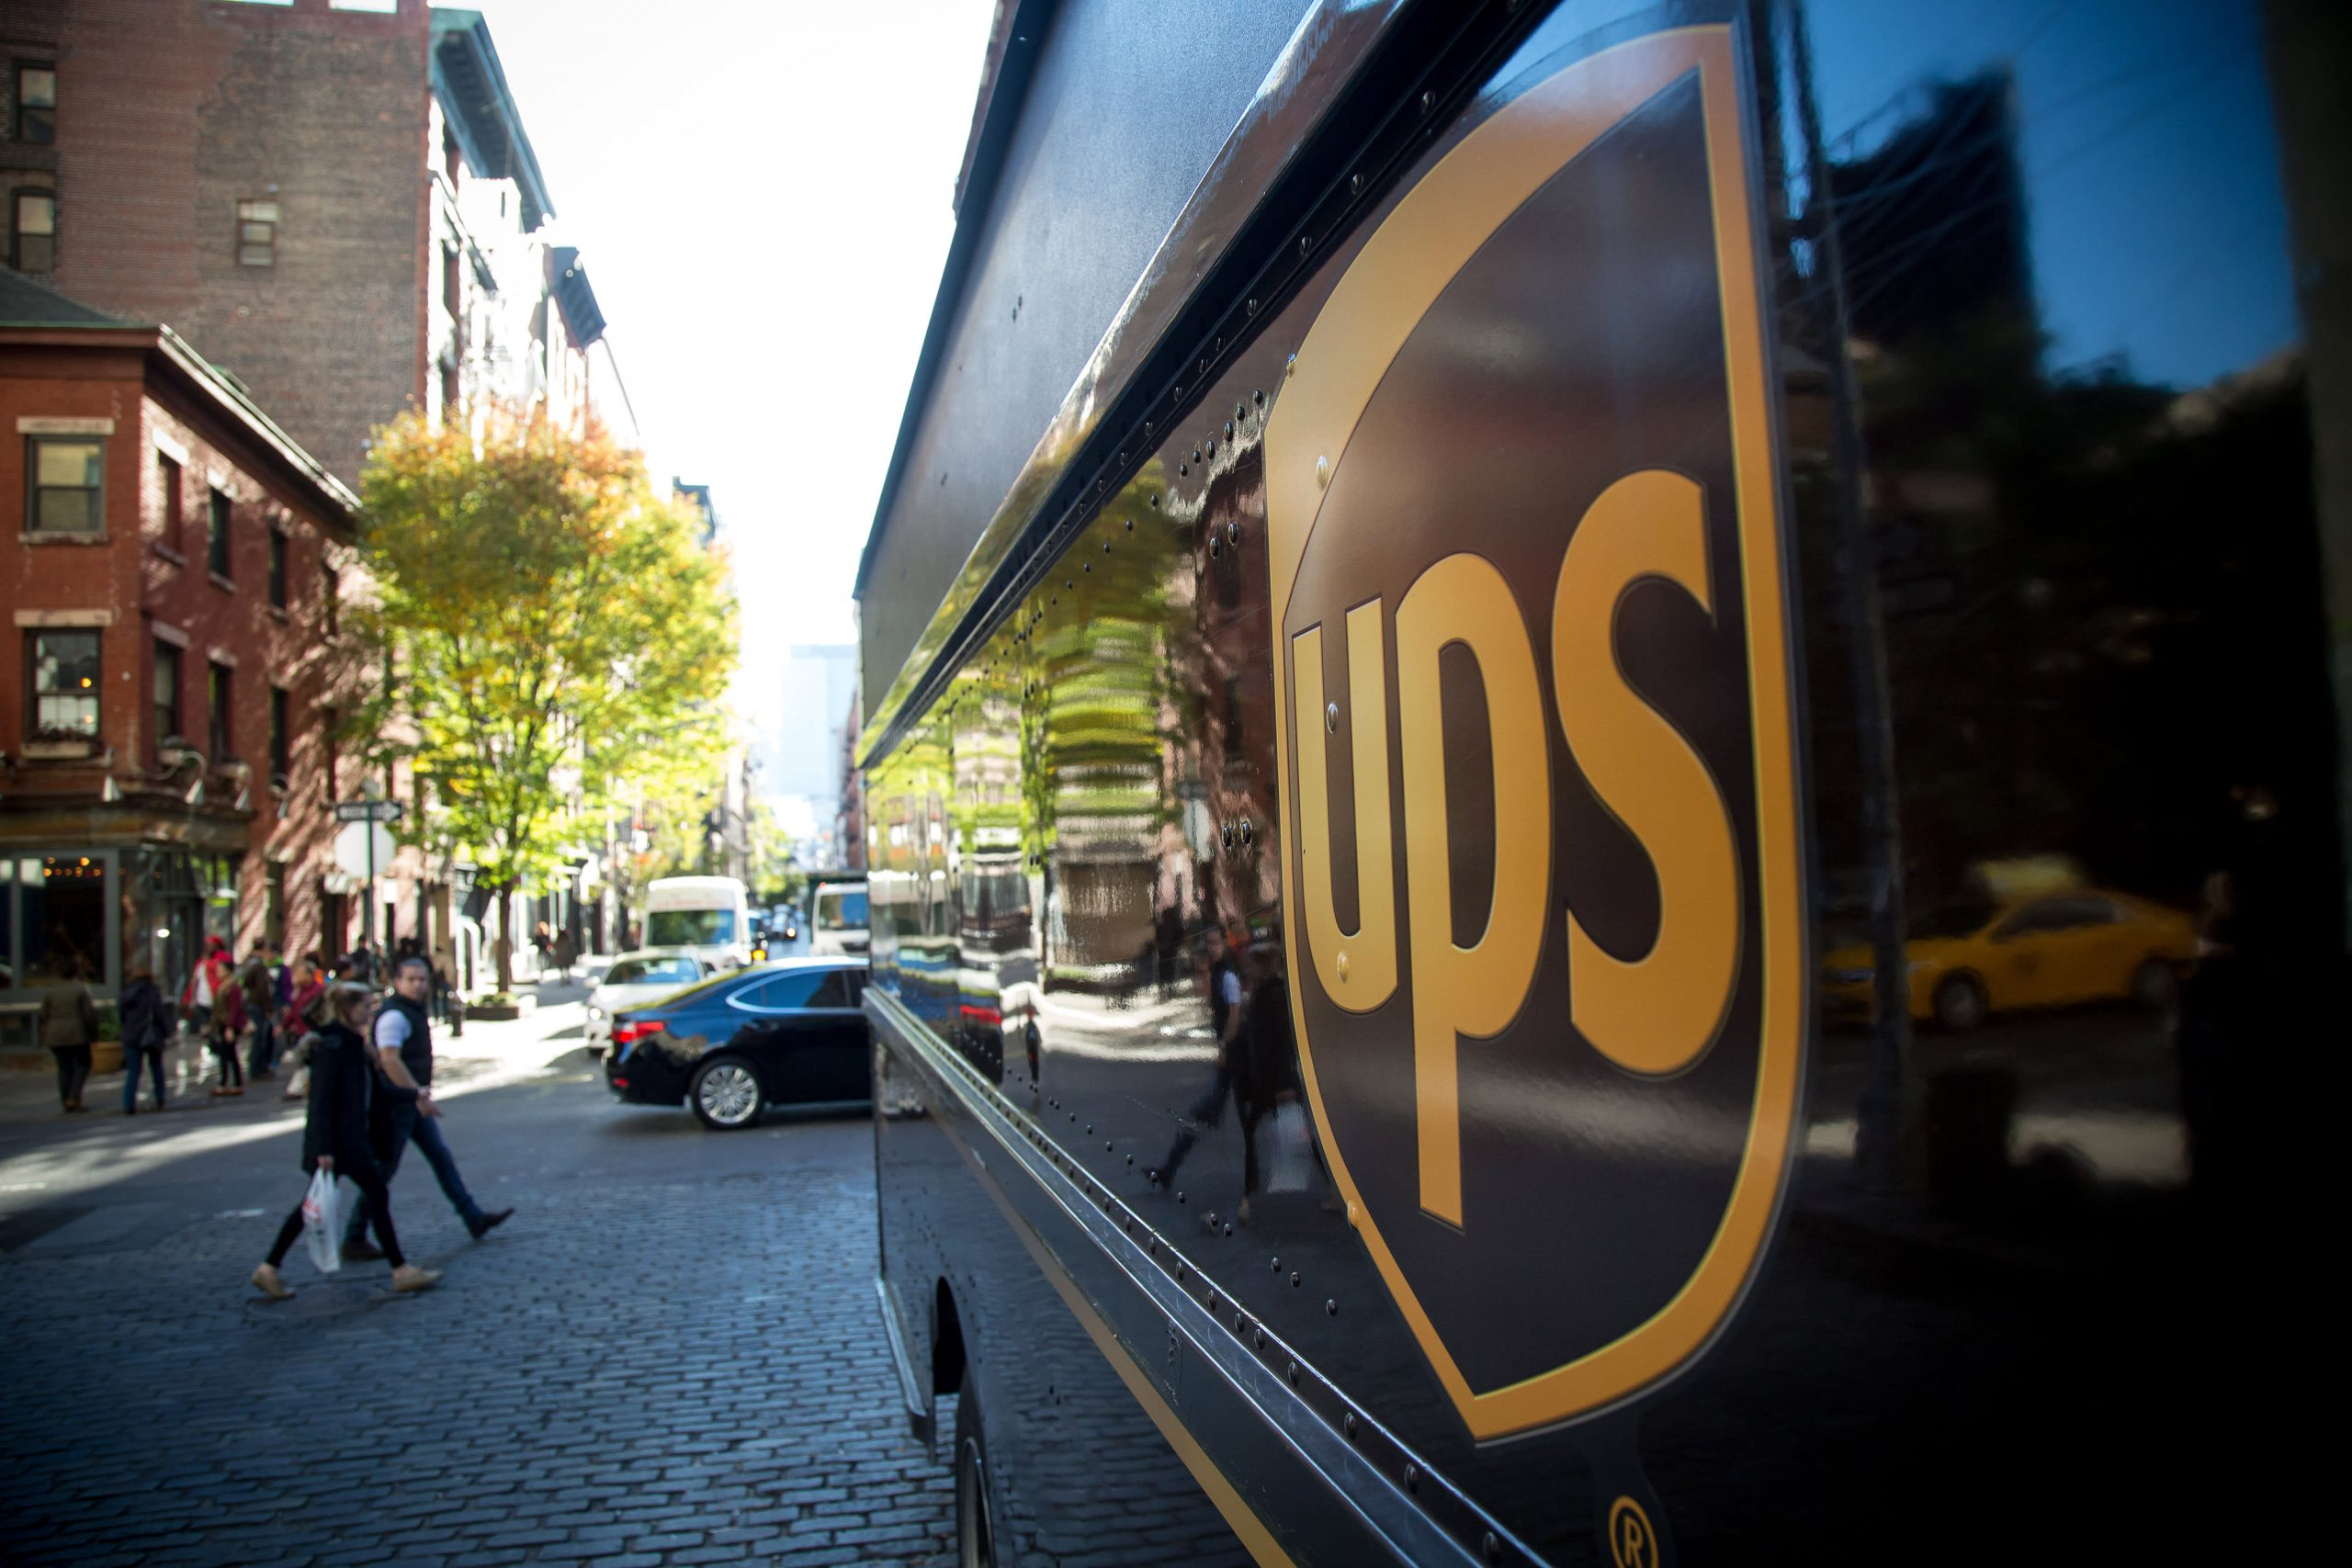 UPS is eyeing a driverless and electric future for its fleet as it focuses on e-commerce